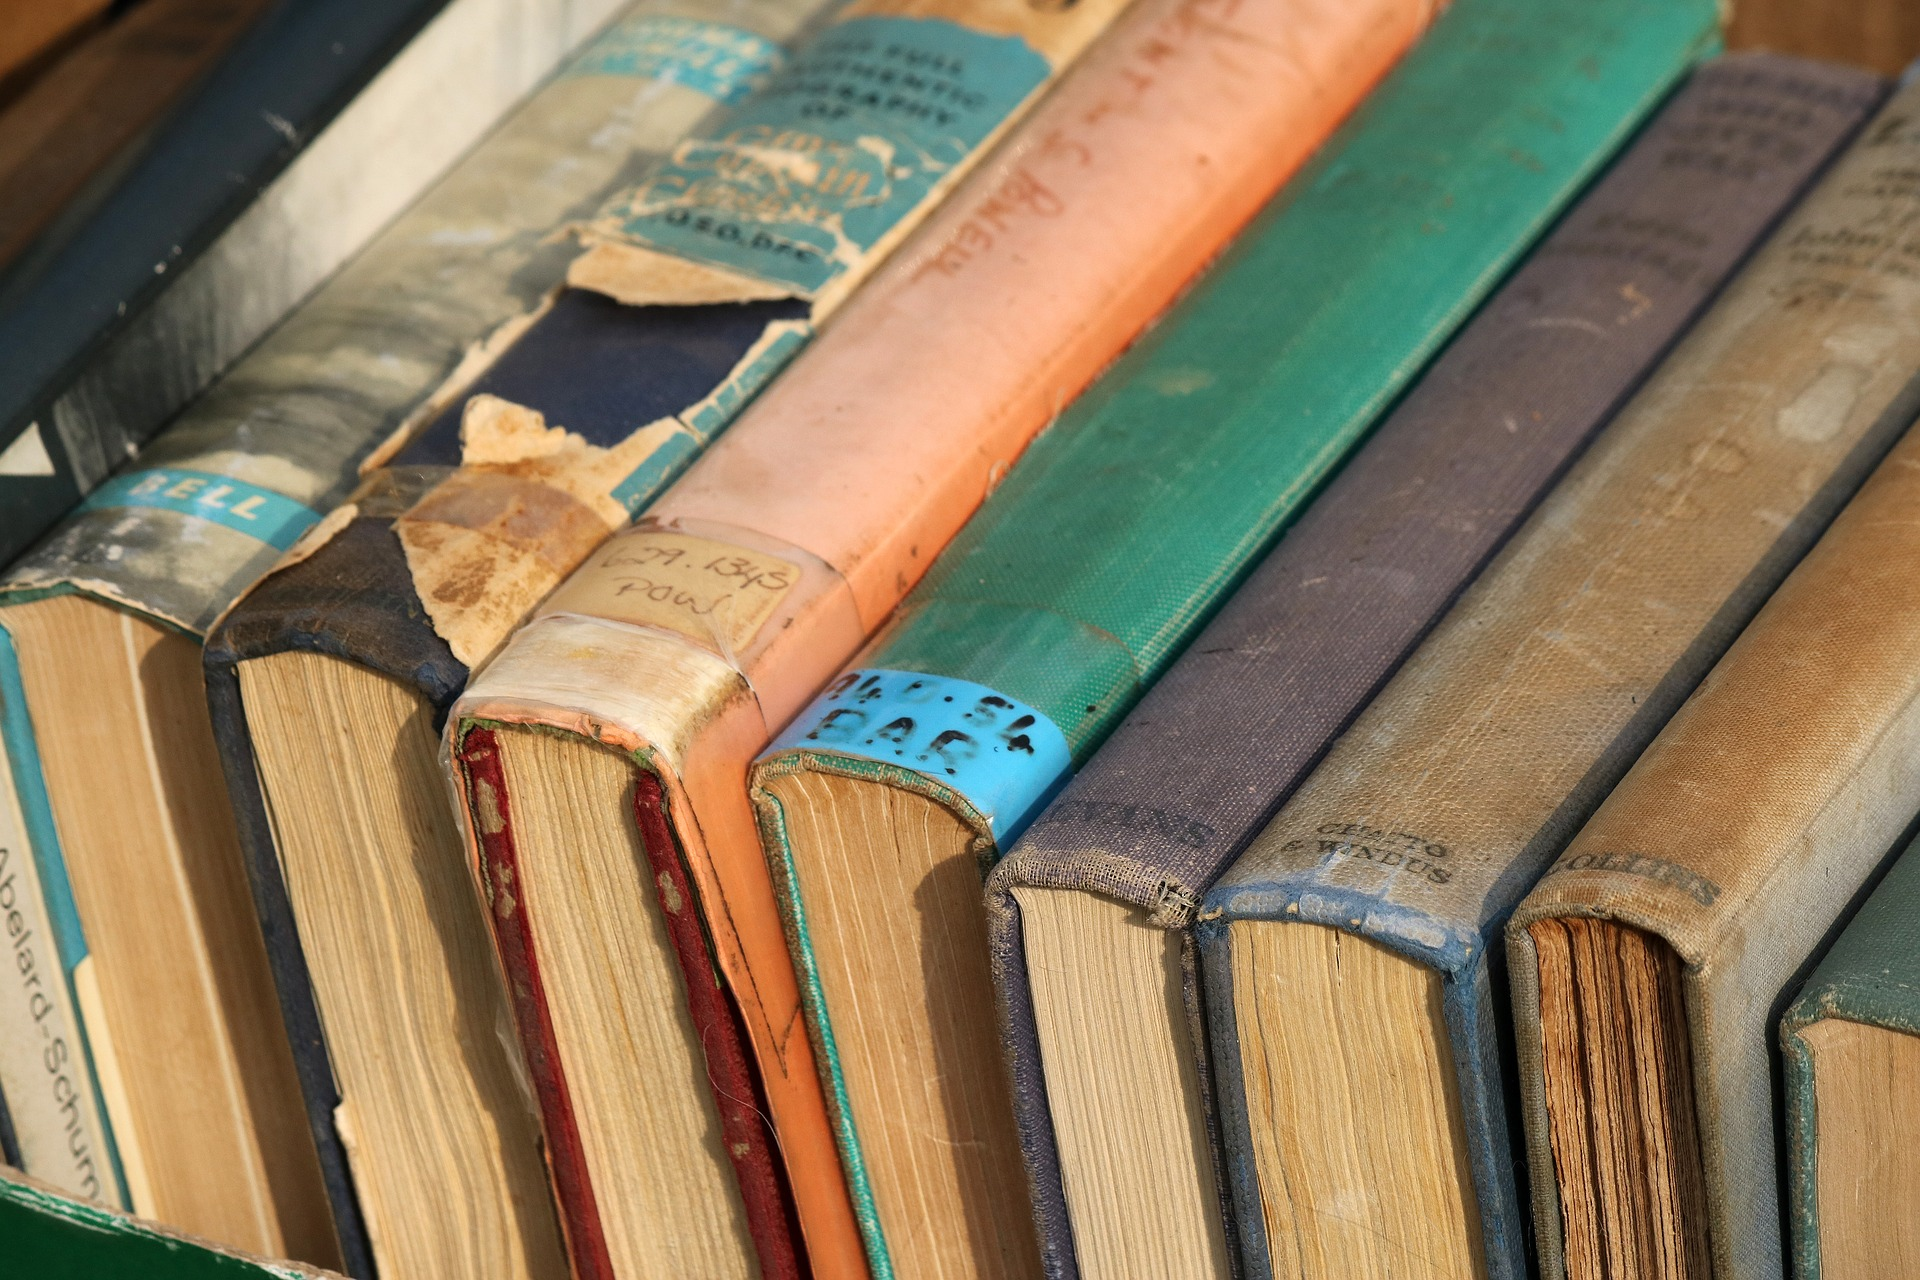 PETWORTH SOCIETY BOOK SALE